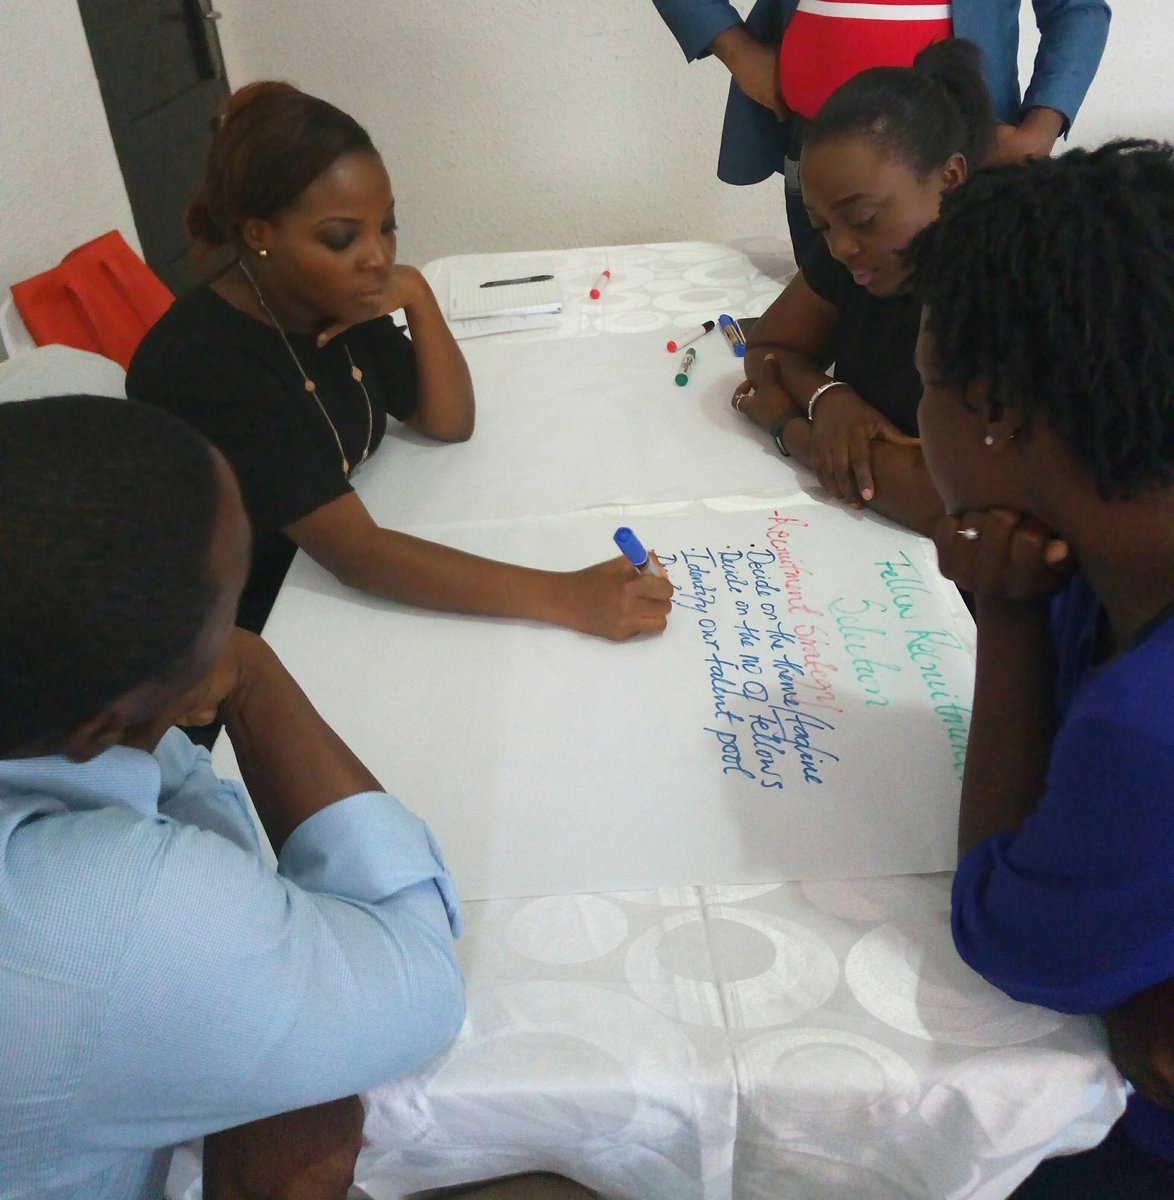 1st activity for the day: Unpacking @Teach4Nigeria intervention #Monitoring #Evaluation #Education #BeginningWithTheEndInMind<br>http://pic.twitter.com/k1UHf80tvi